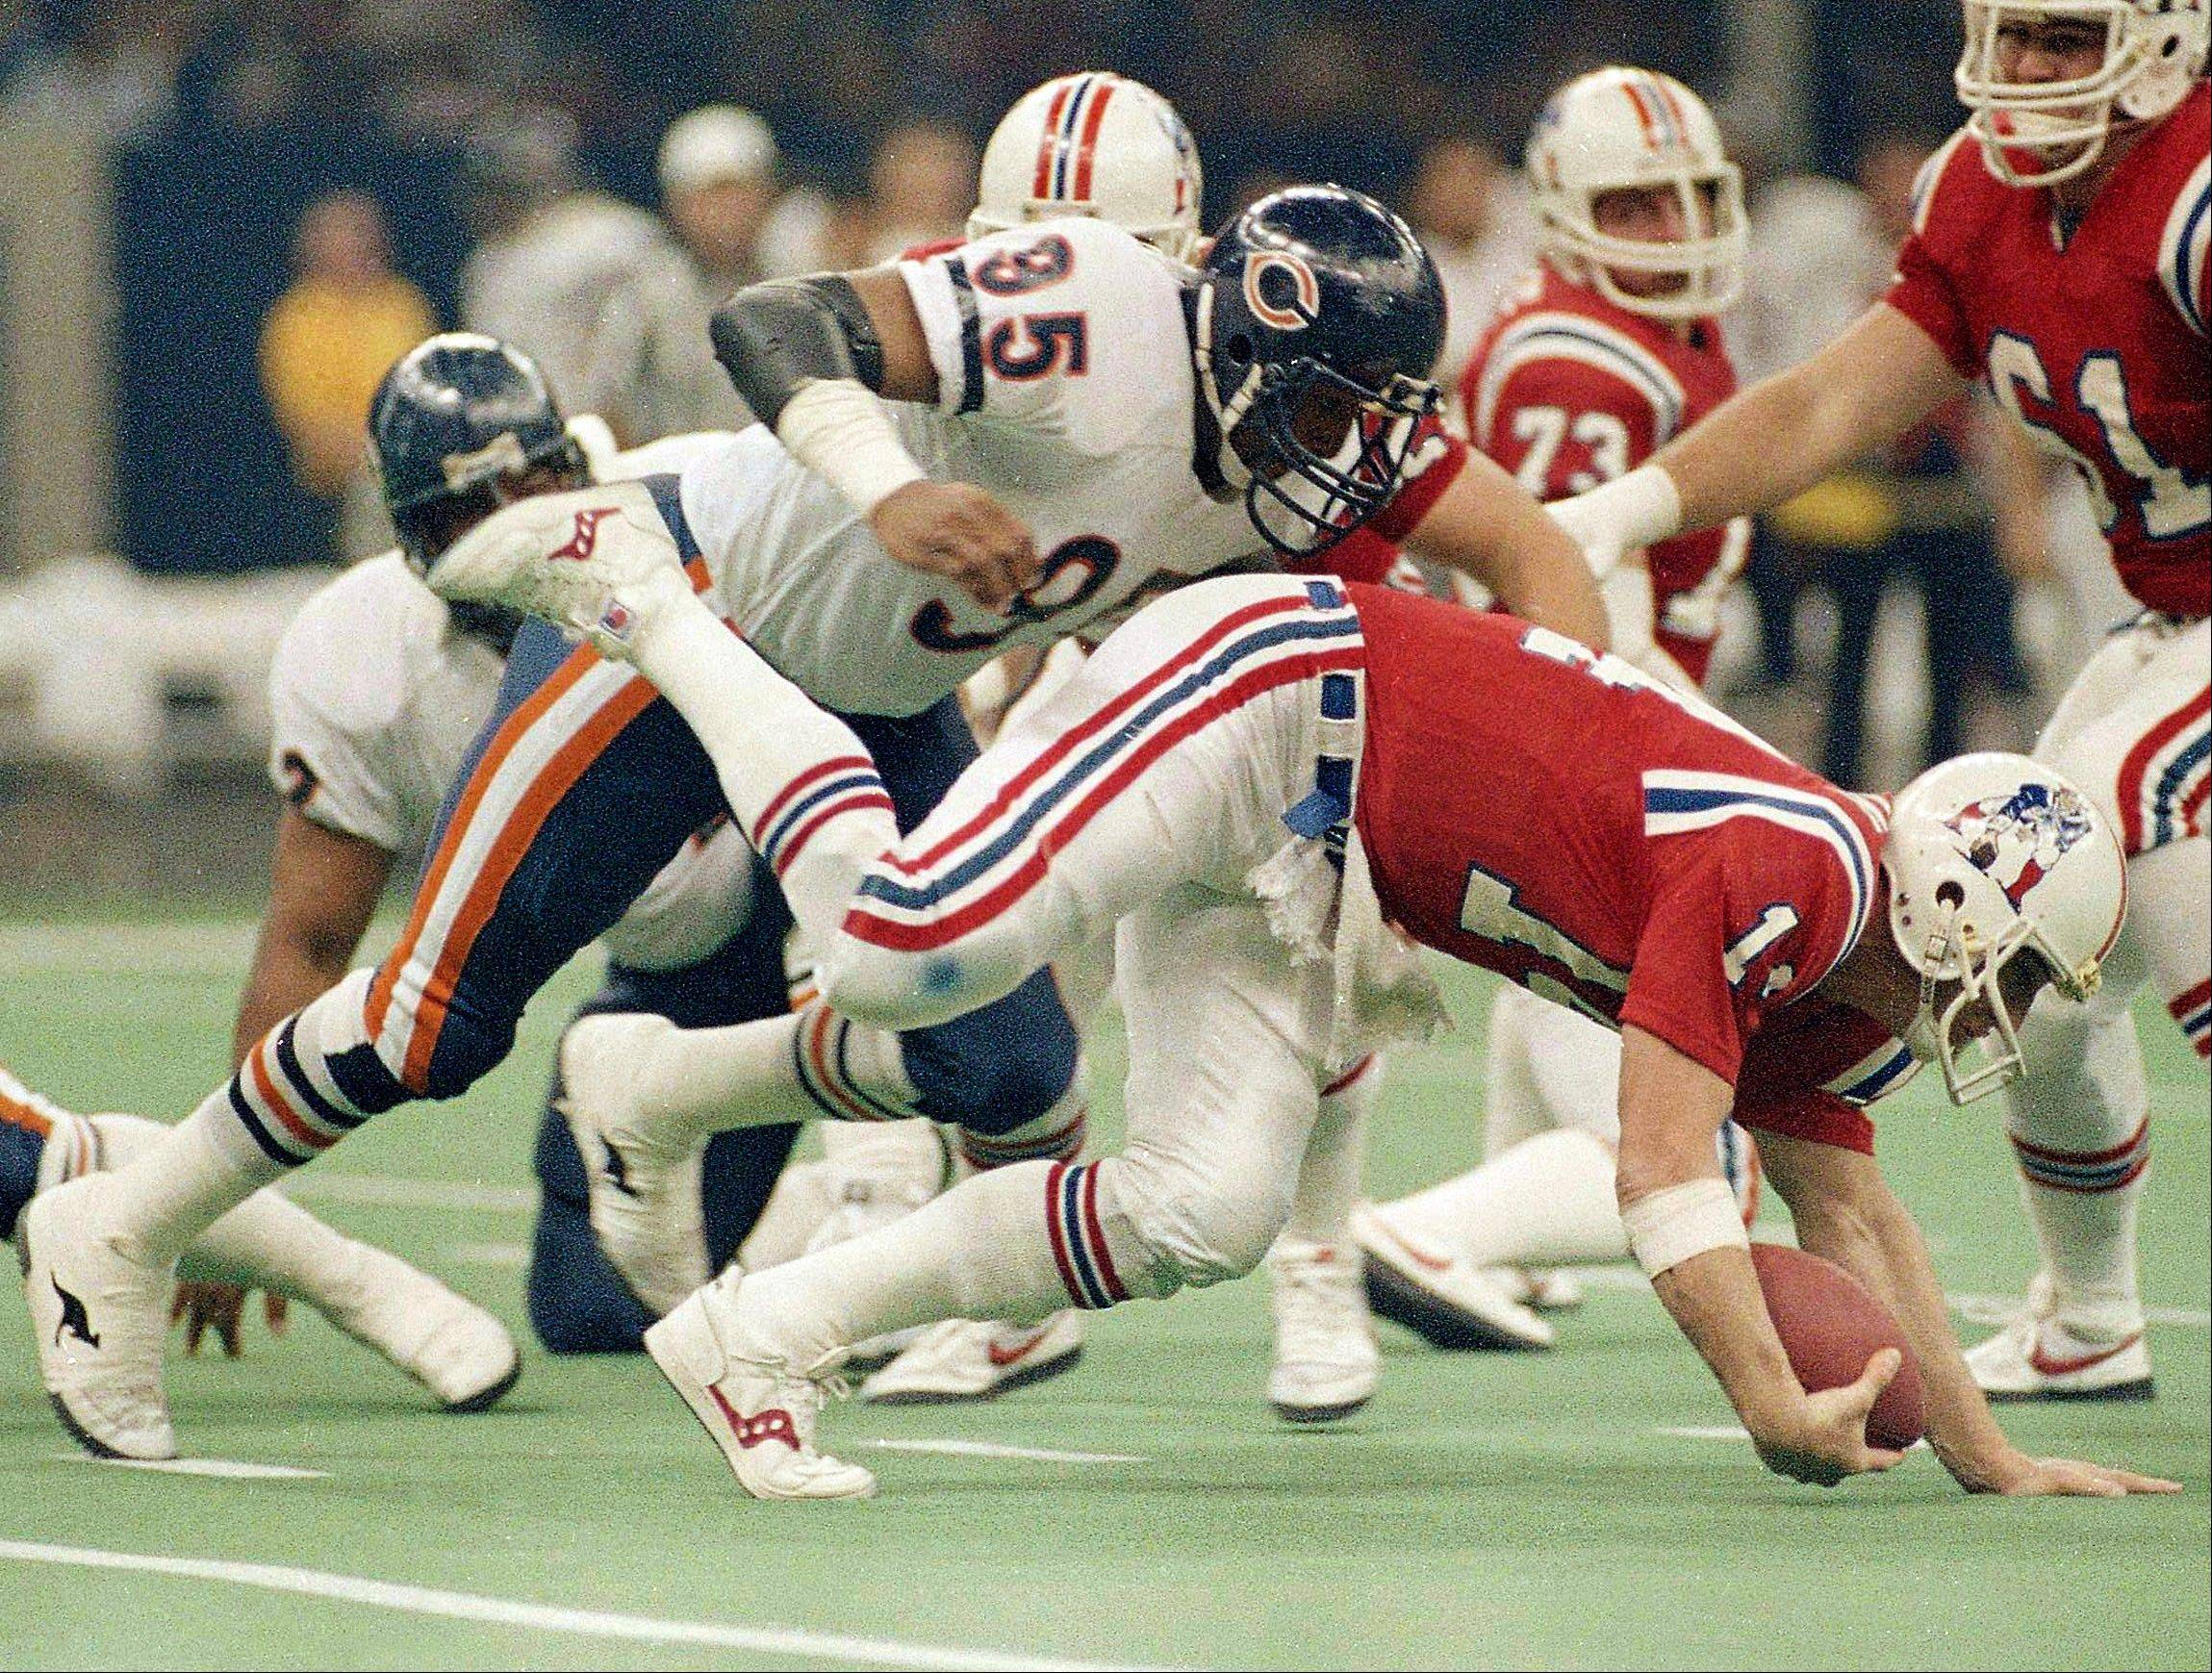 In the New England backfield for much of the game, Bears defensive end Richard Dent sacks Patriots' quarterback Steve Grogan during the Super Bowl XX football game in New Orleans. The Bears won 46-10 and Dent was named most valuable player of the game.